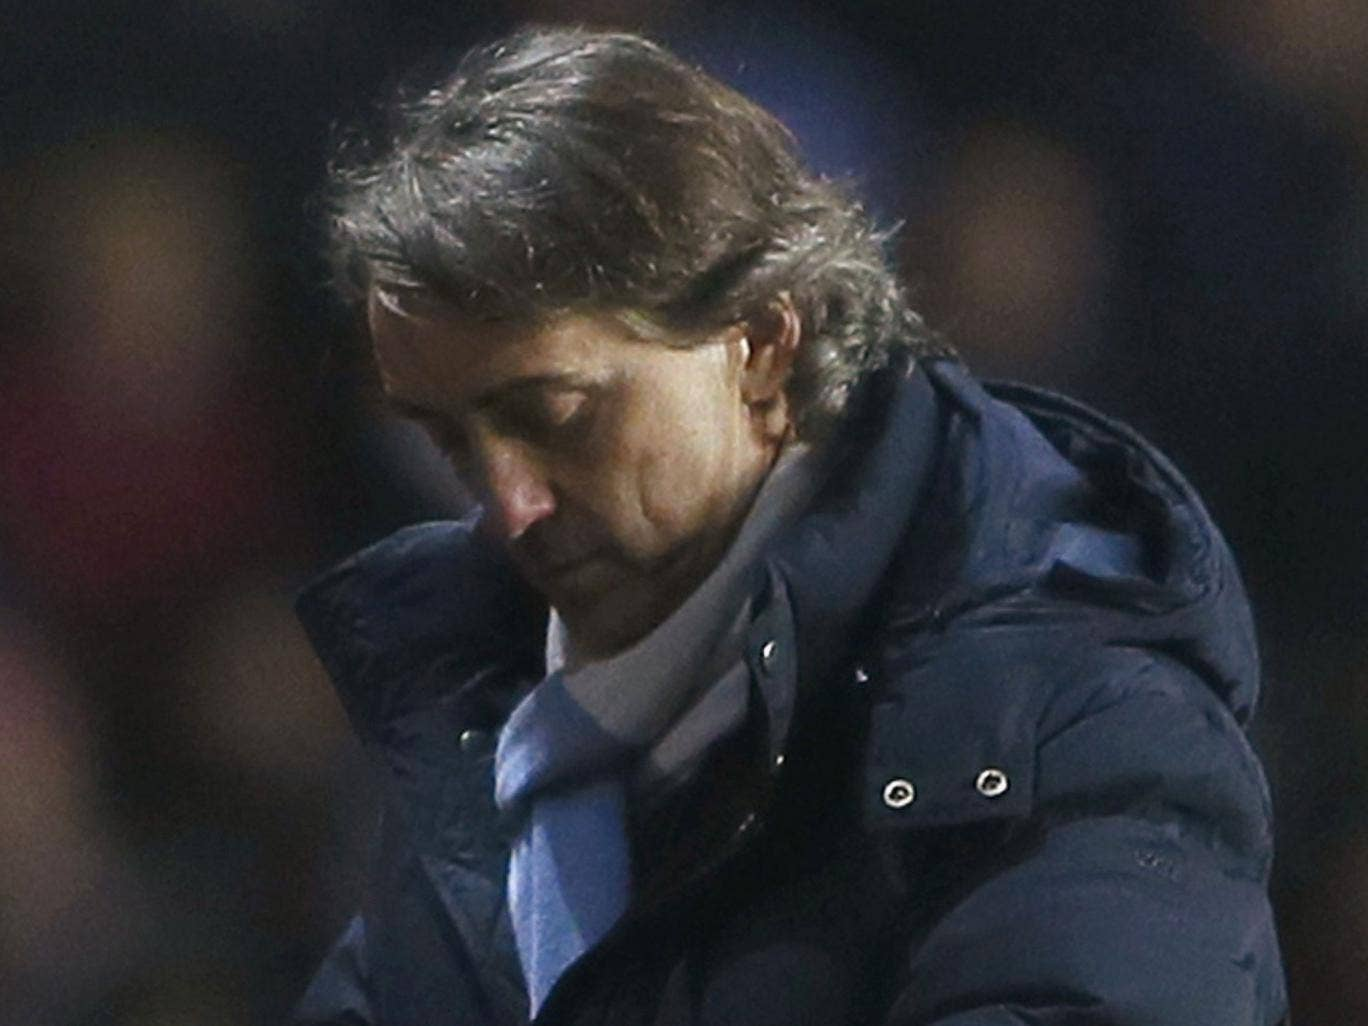 Roberto Mancini admitted that Man City's chances of retaining their title were low and may disappear altogether if Man United win at home to Everton